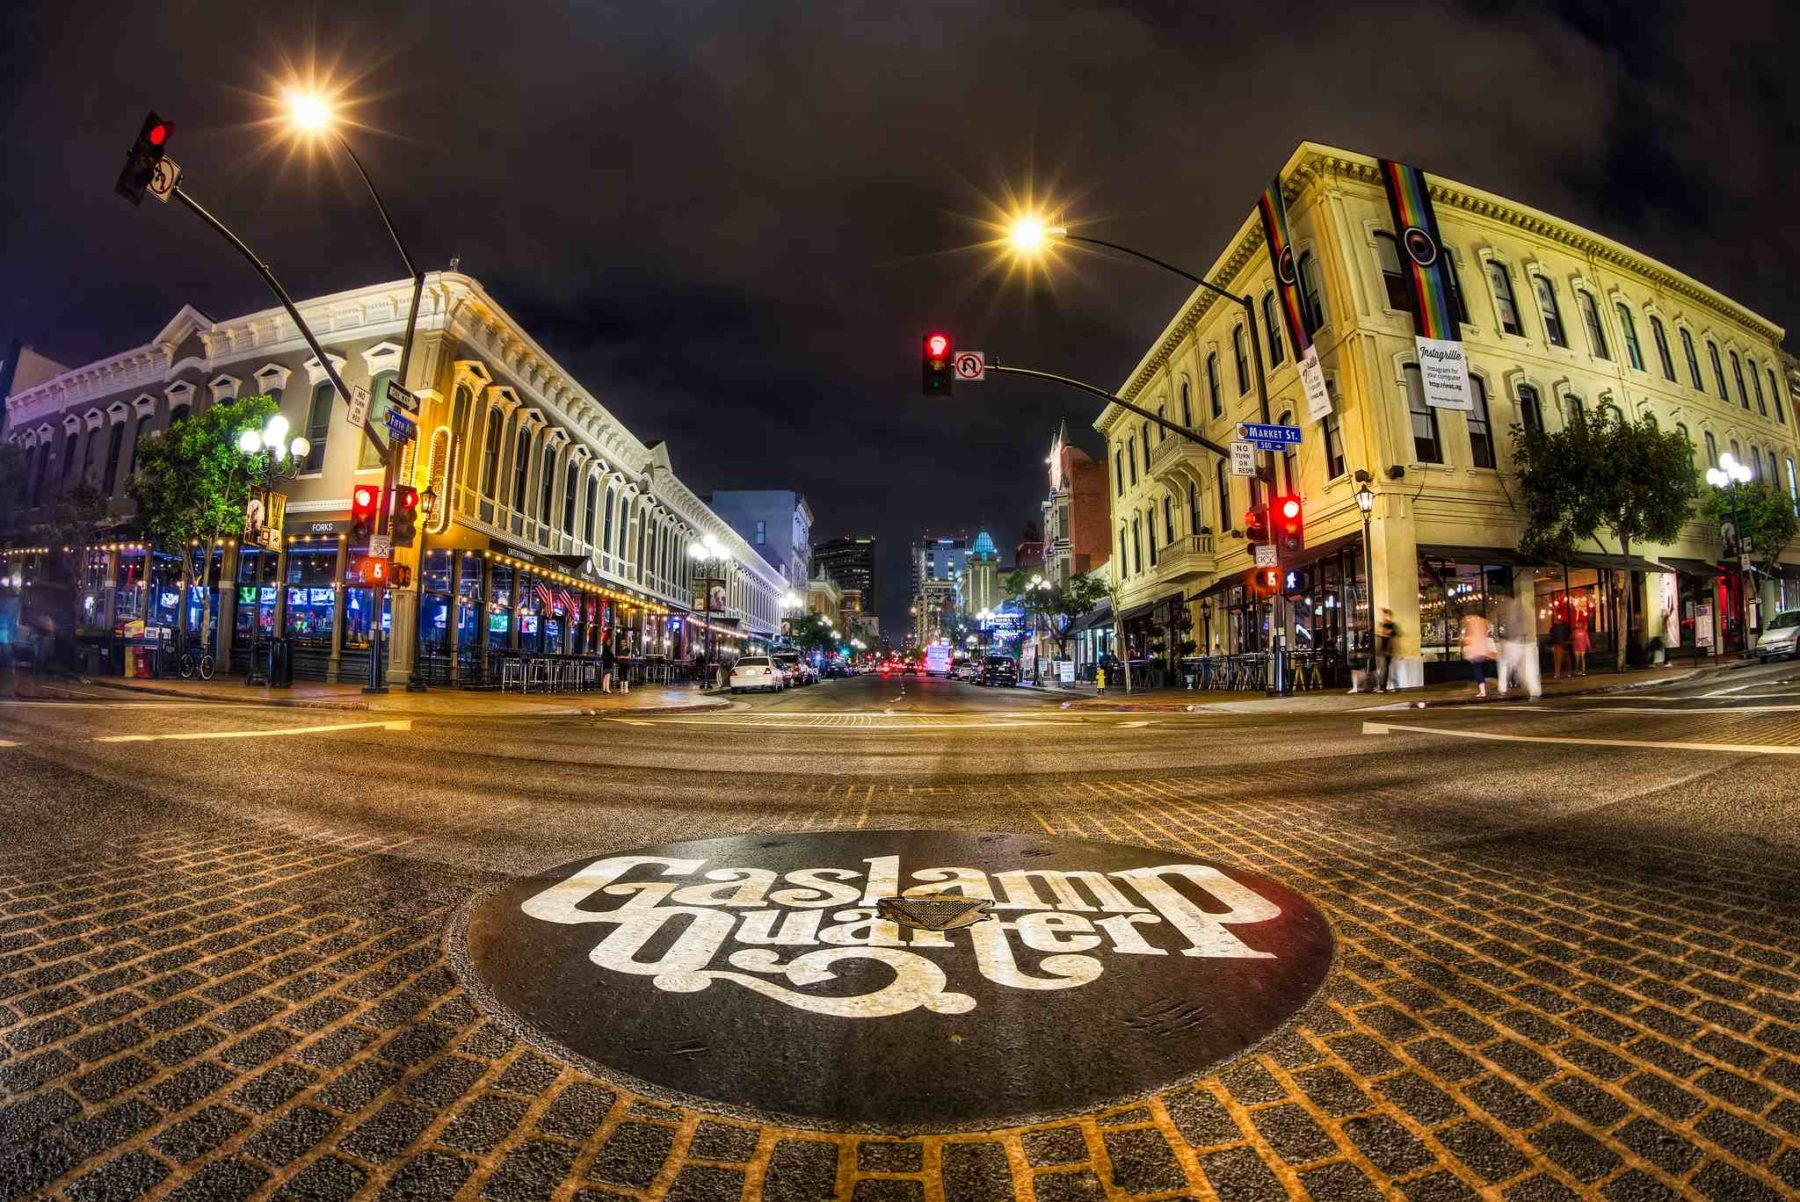 Places to Visit in San Diego: The Gaslamp Quarter